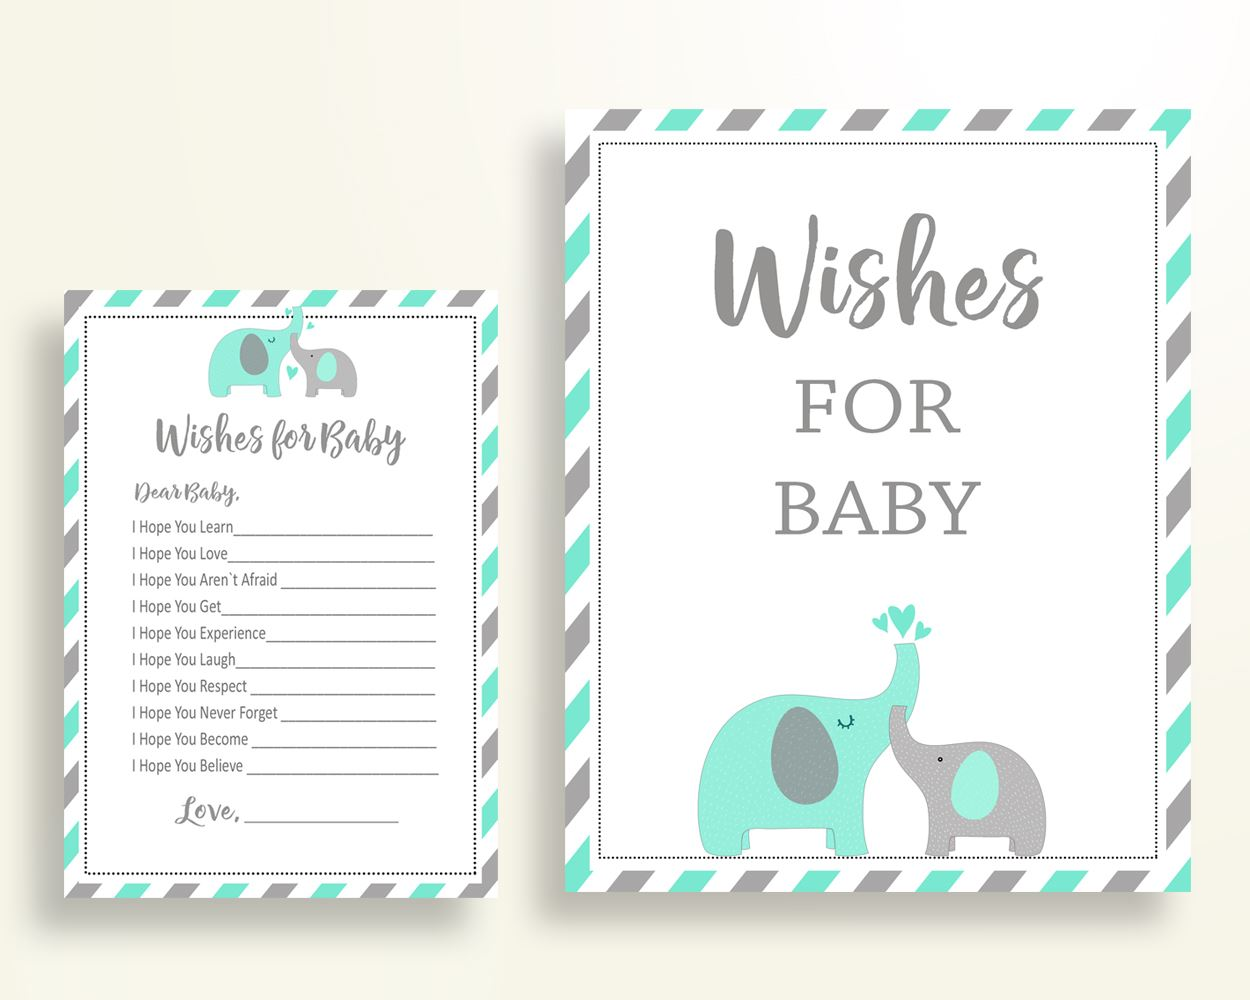 Wishes For Baby Baby Shower Wishes For Baby Turquoise Baby Shower Wishes For Baby Baby Shower Elephant Wishes For Baby Green Gray baby 5DMNH - Digital Product